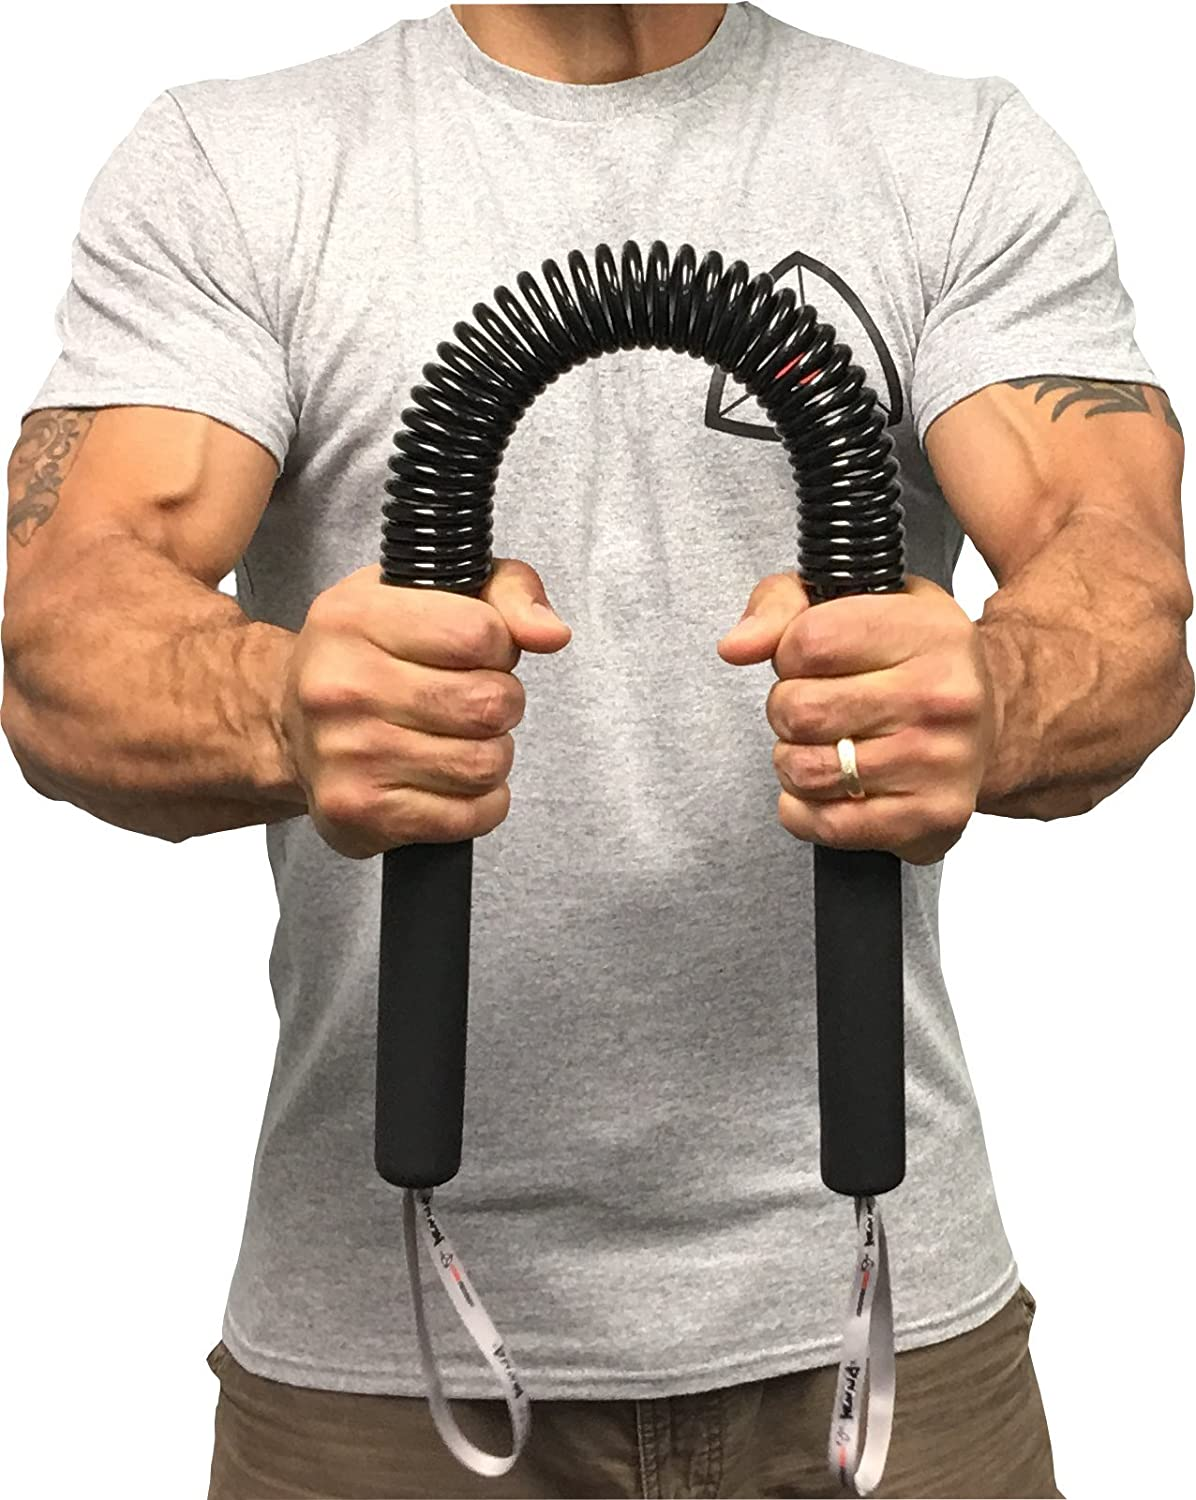 Core Prodigy Python Power Twister – Chest, Bicep Blaster, Shoulder and Arm Builder Spring Exercise